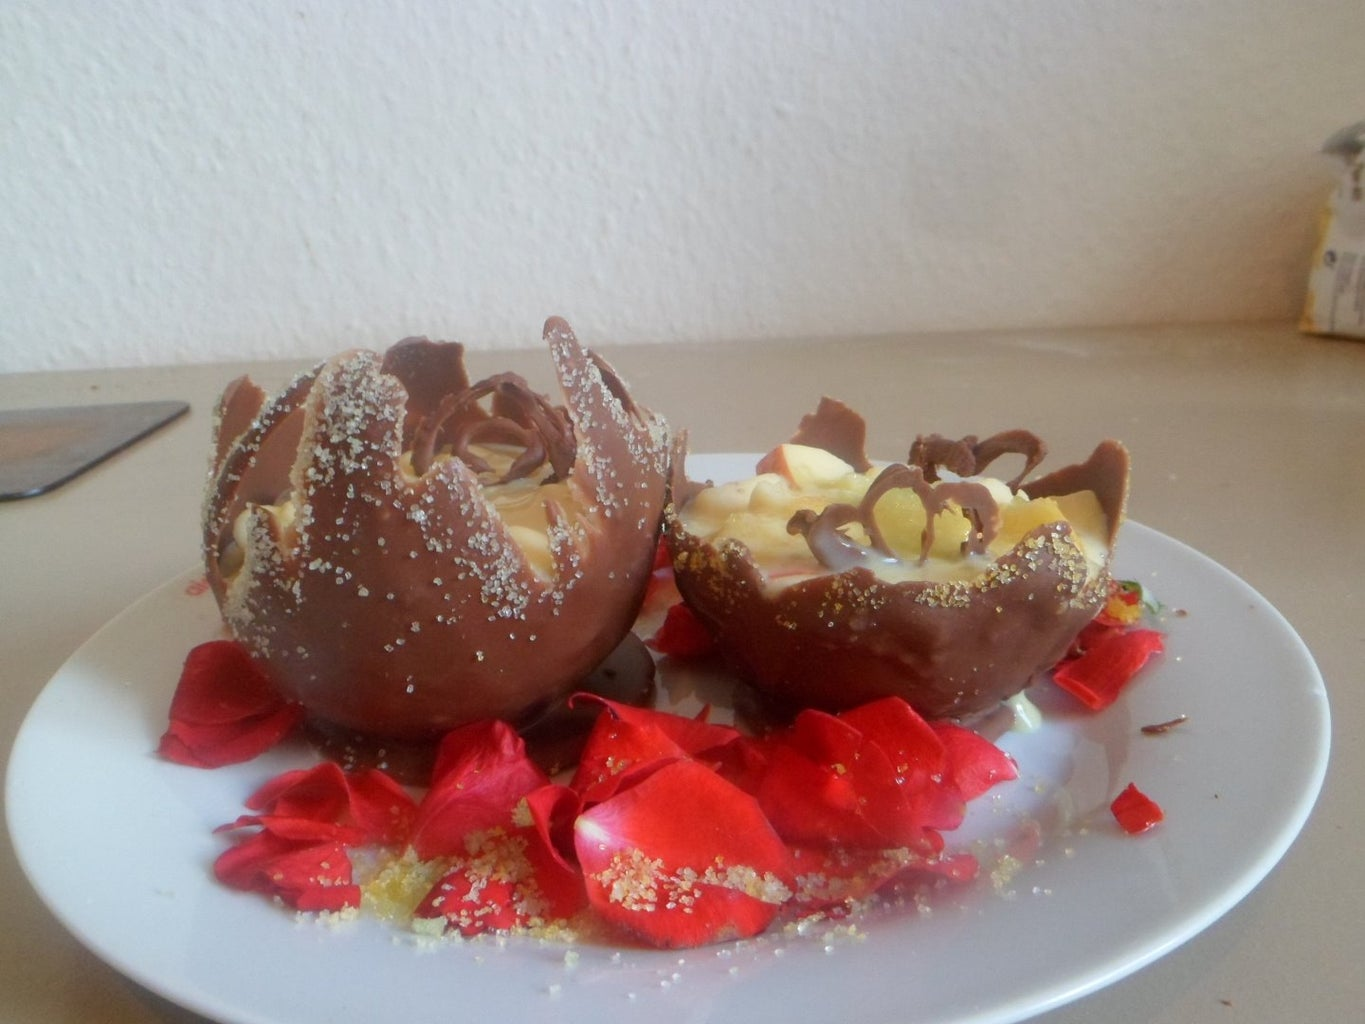 Making Choclate Bowls and Decorating With Sugar Glitters: